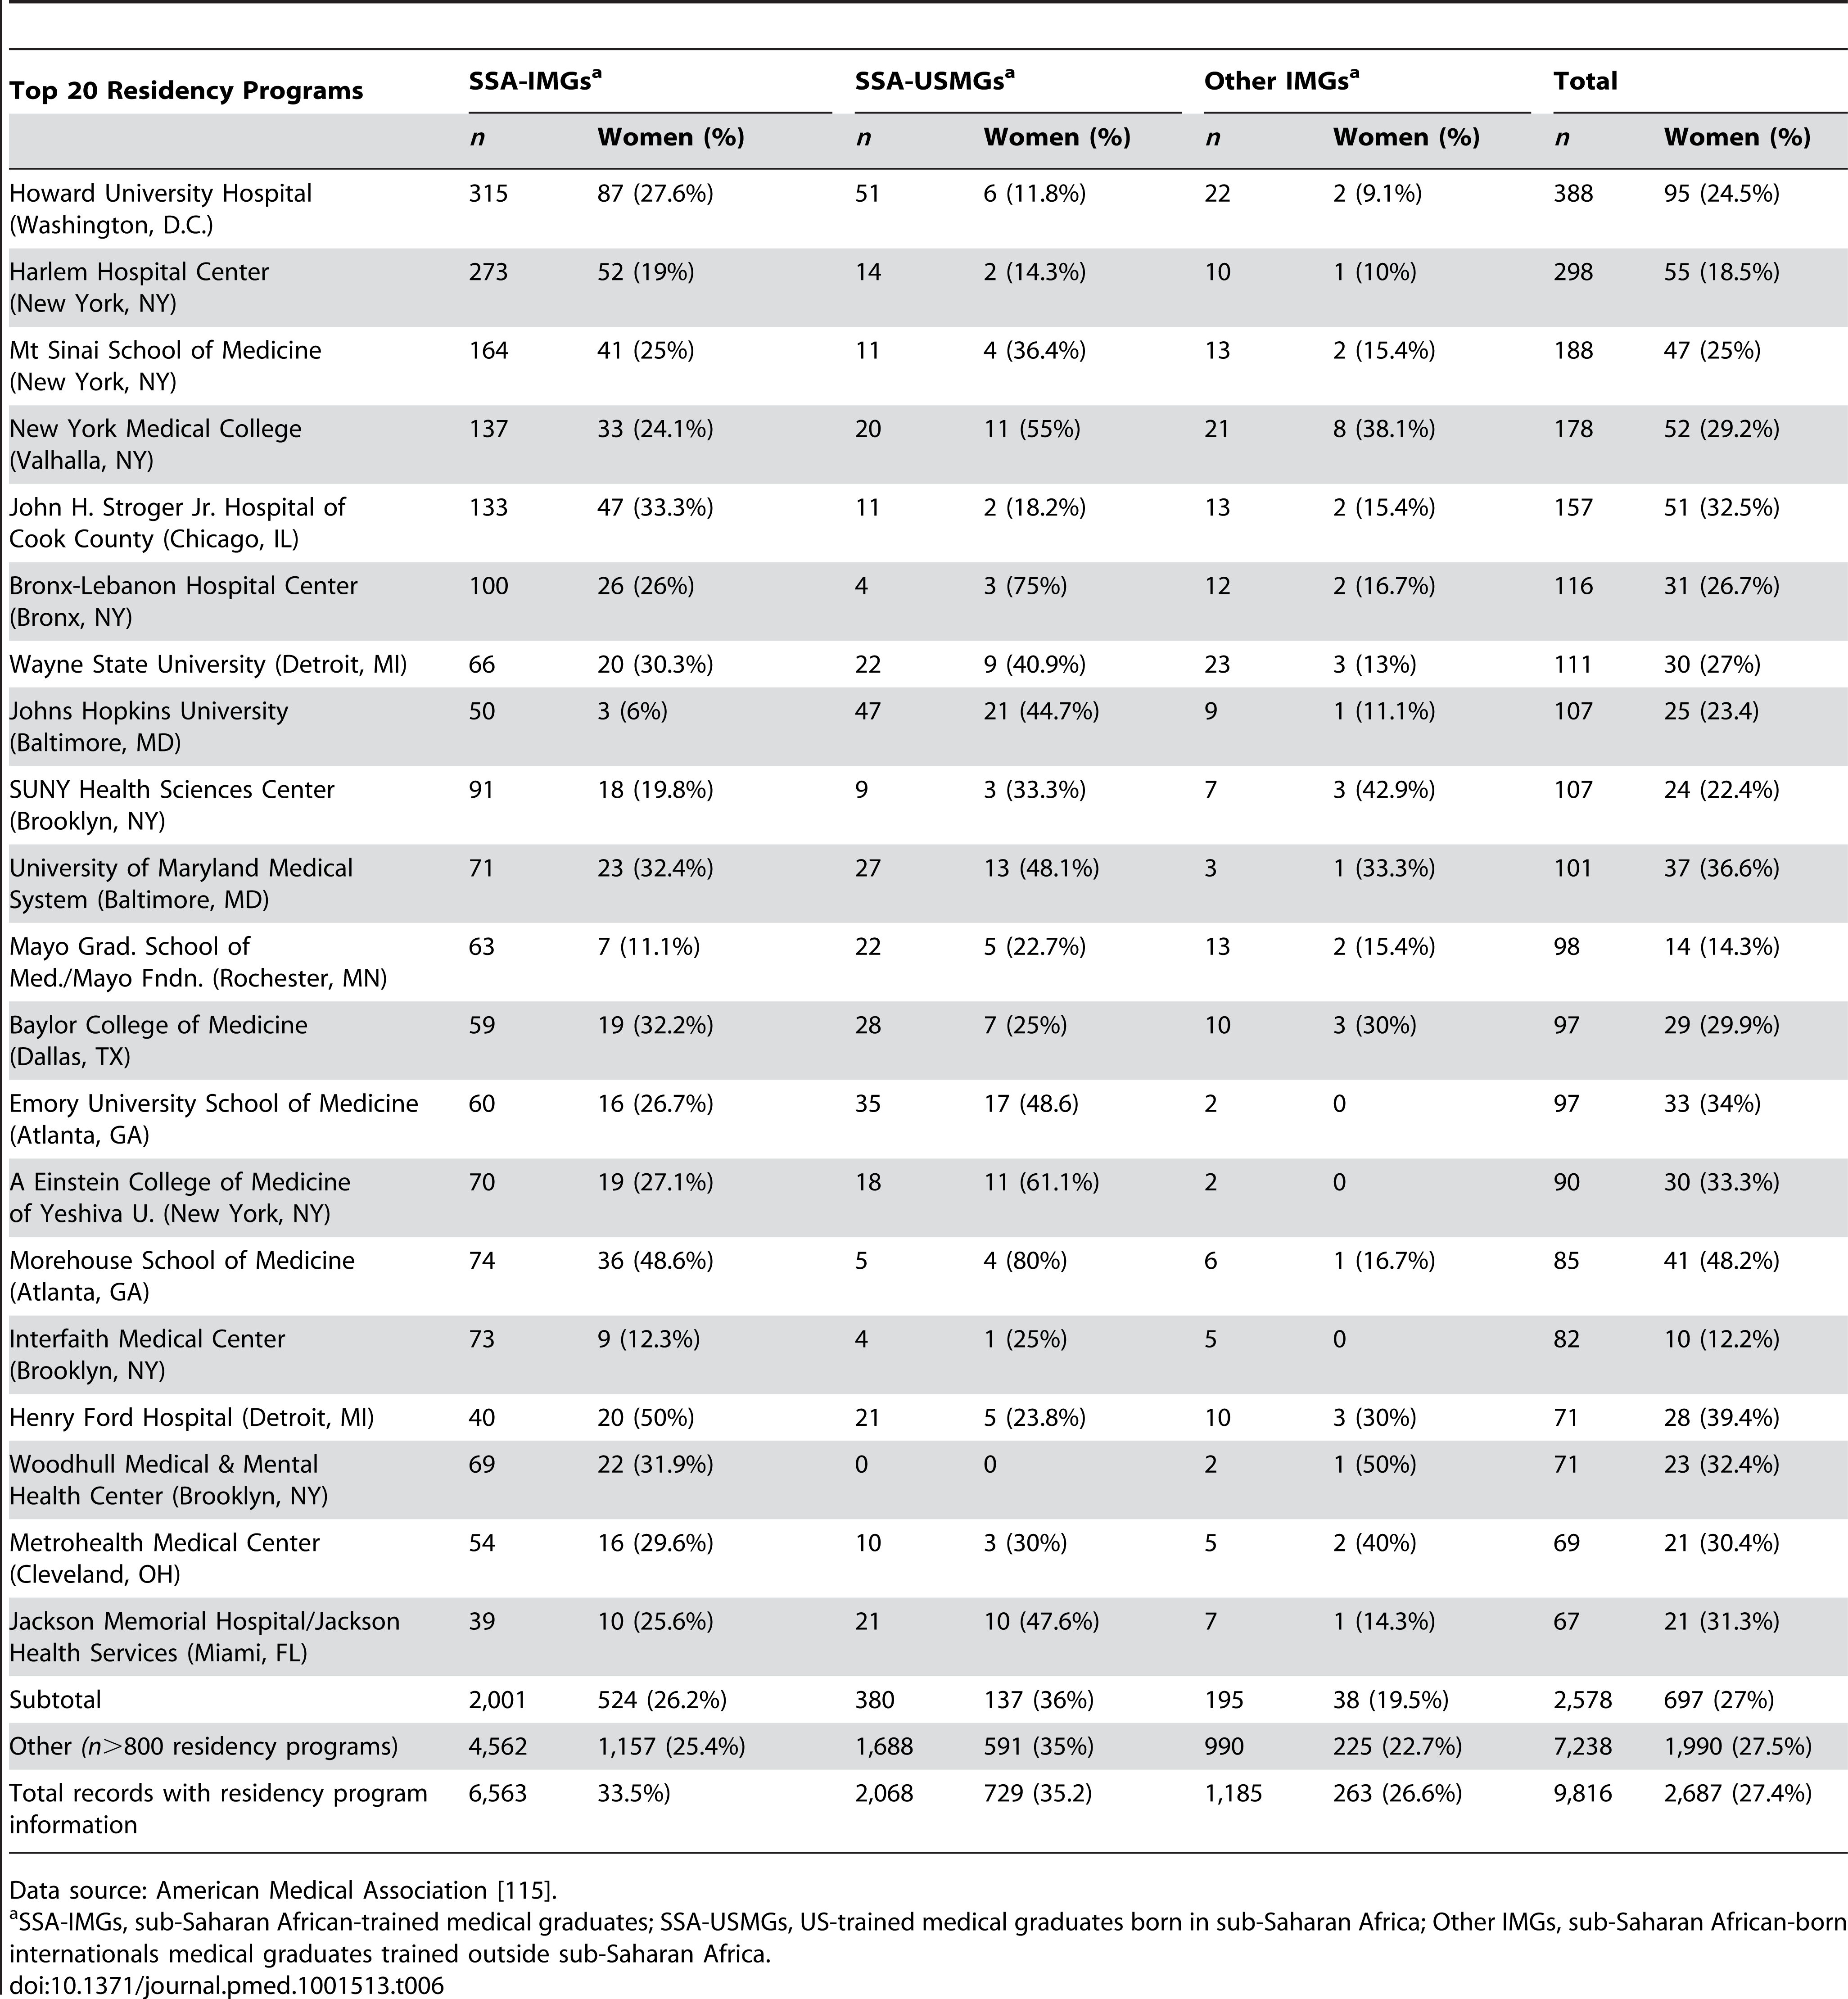 US residency institutions that trained the highest number of Sub-Saharan African physicians appearing in the US physician workforce in 2011.